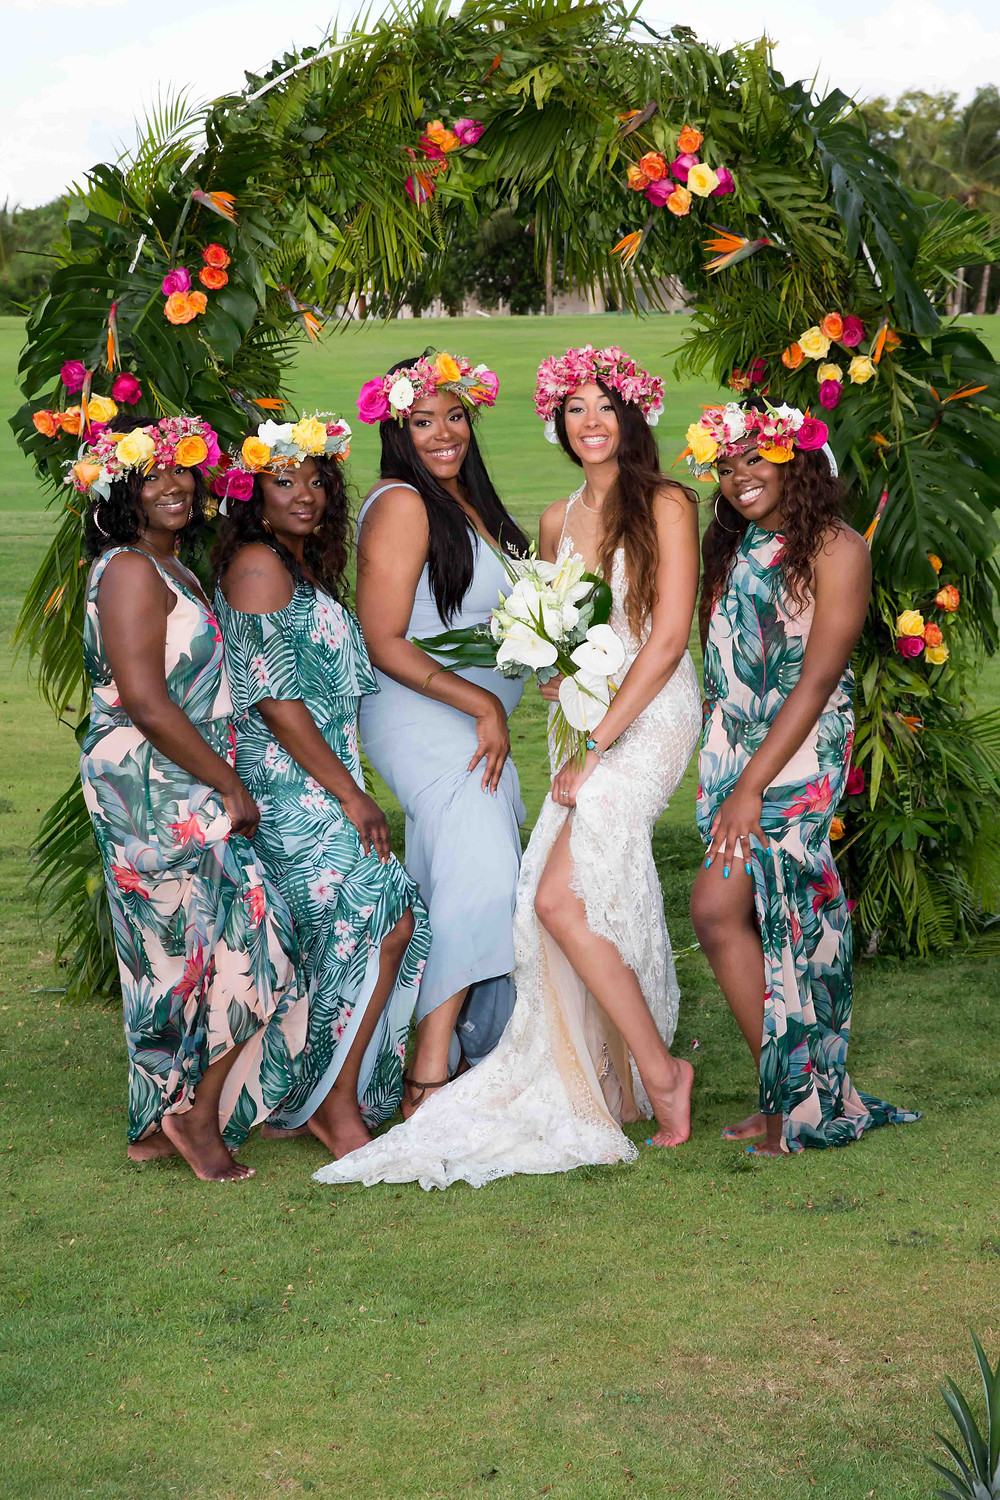 The bride and her bridesmaids pose for a fun formal portrait after the destination wedding in Punta Cana, Dominican Republic.